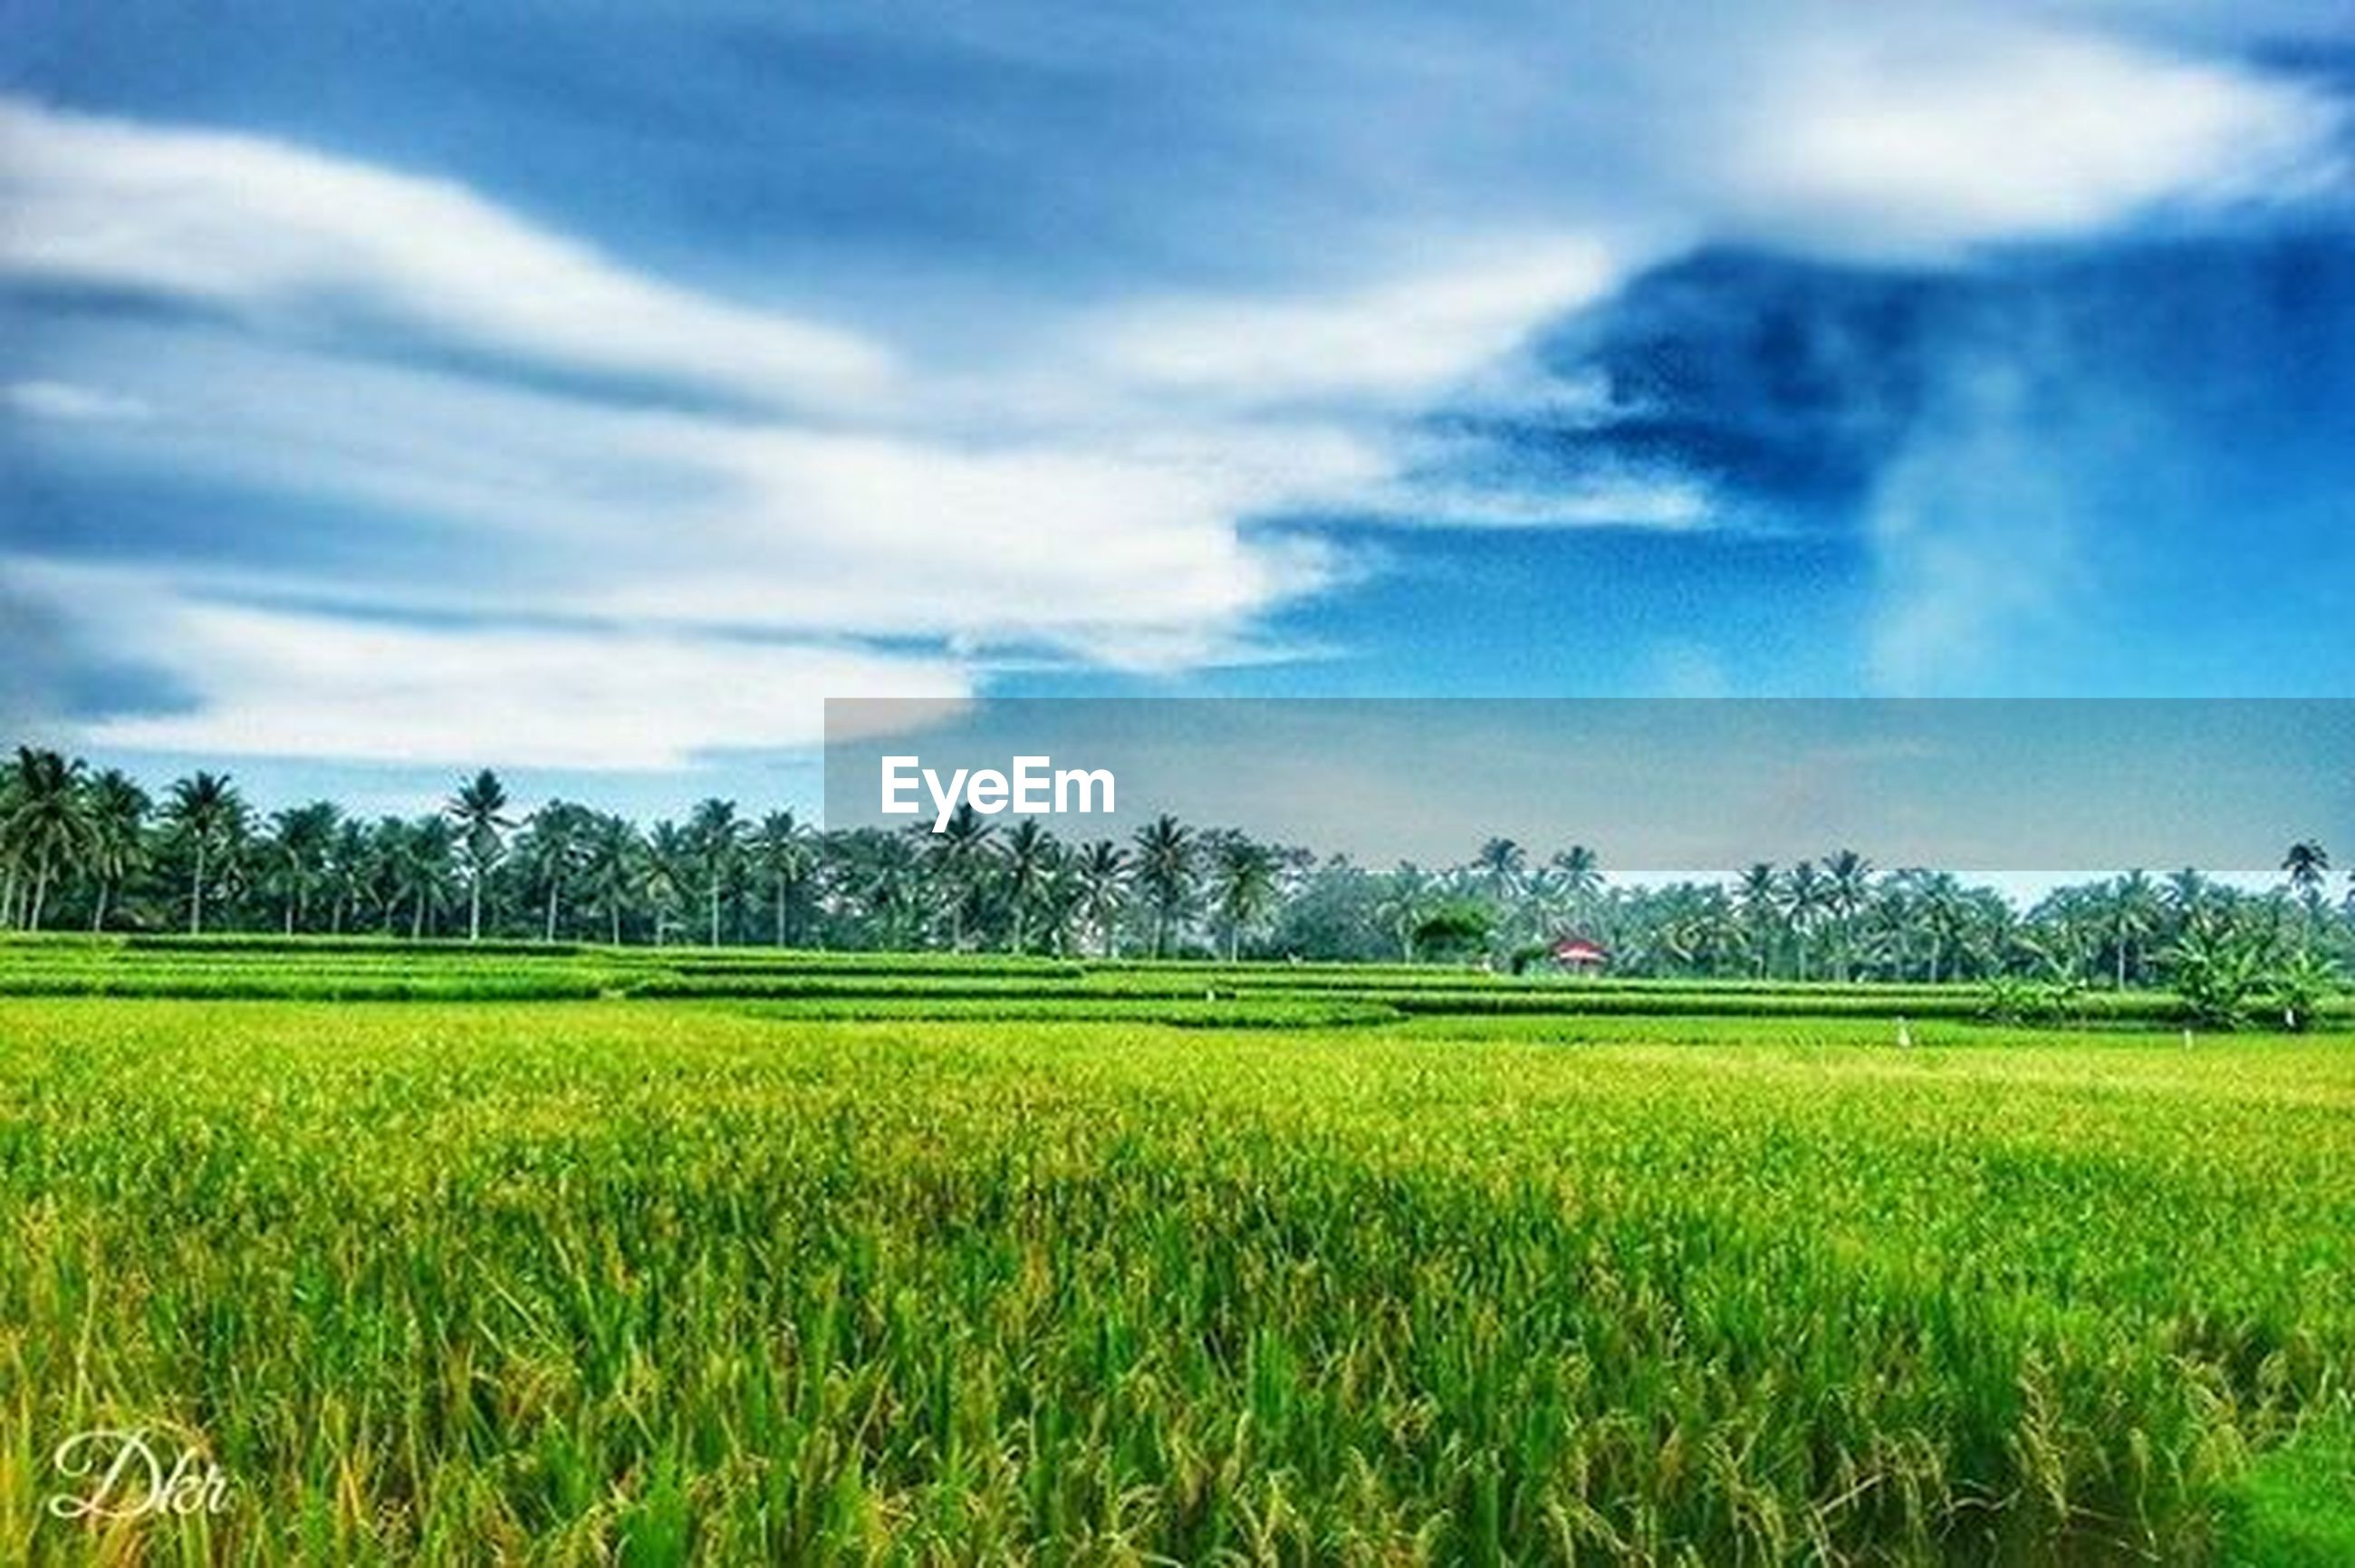 agriculture, field, rural scene, landscape, sky, tranquil scene, growth, farm, crop, tranquility, beauty in nature, scenics, nature, cloud - sky, cultivated land, tree, green color, cloud, cloudy, grass